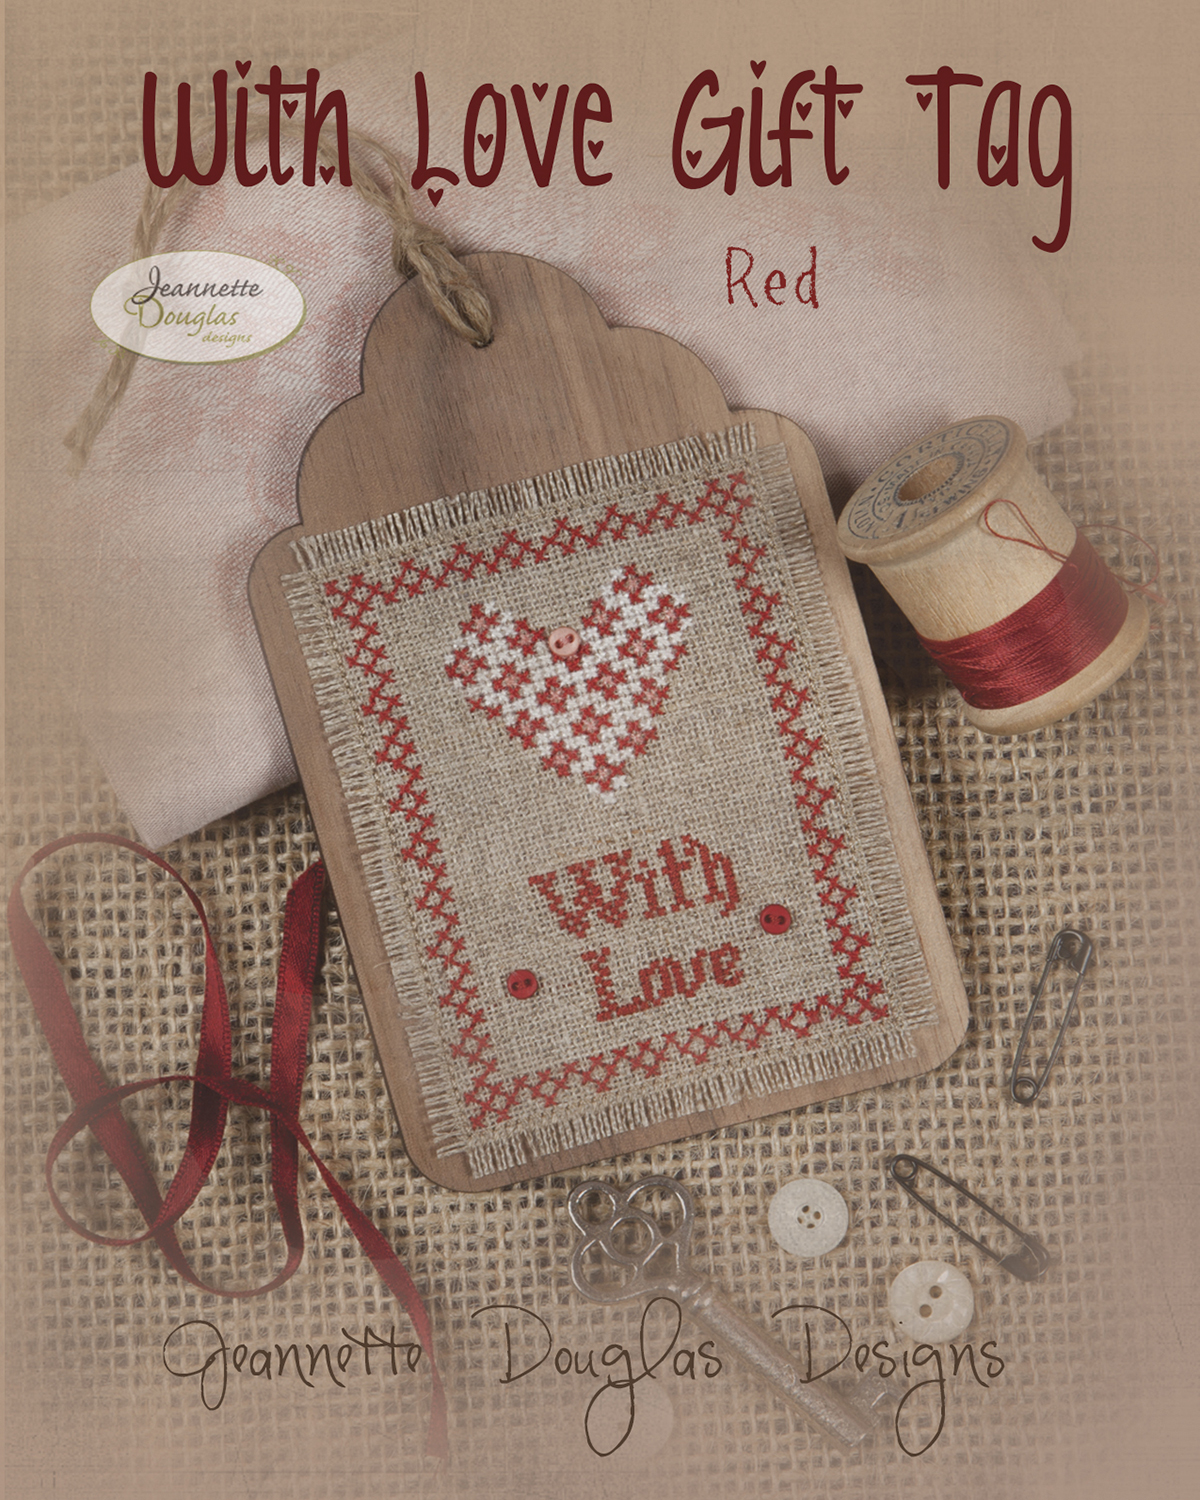 With Love Gift Tag red